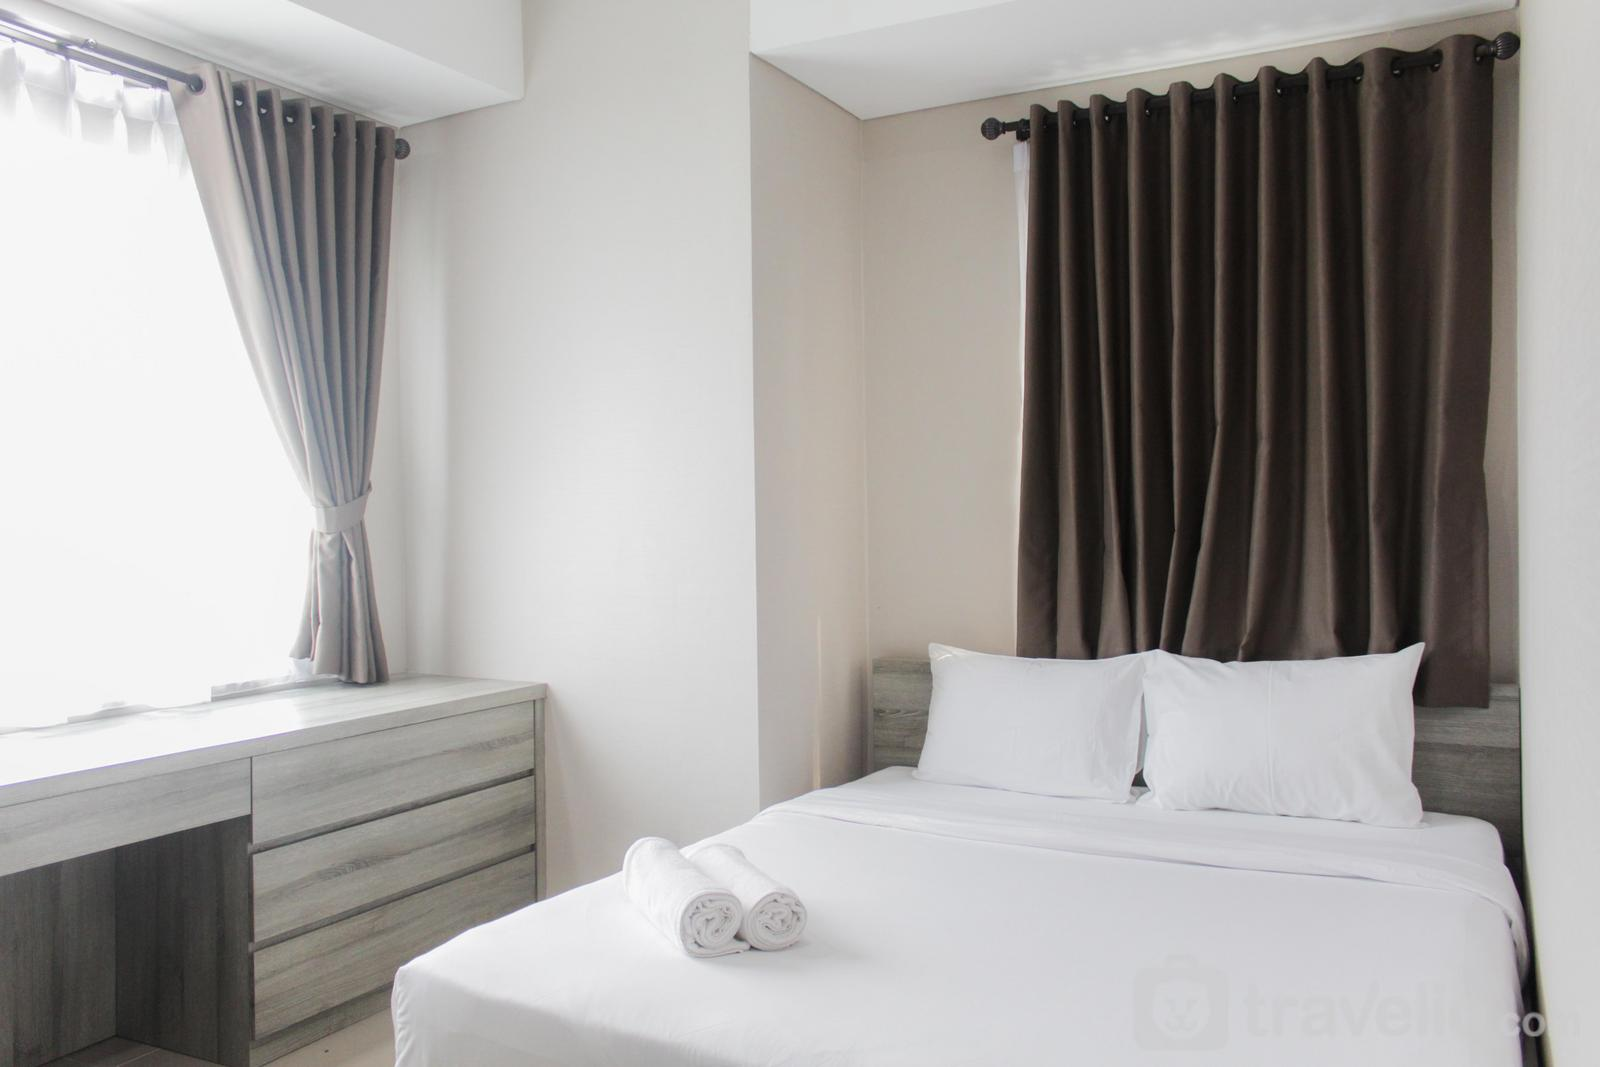 Apartemen B Residence - Comfy and Stylish Studio Apartment at B Residence By Travelio